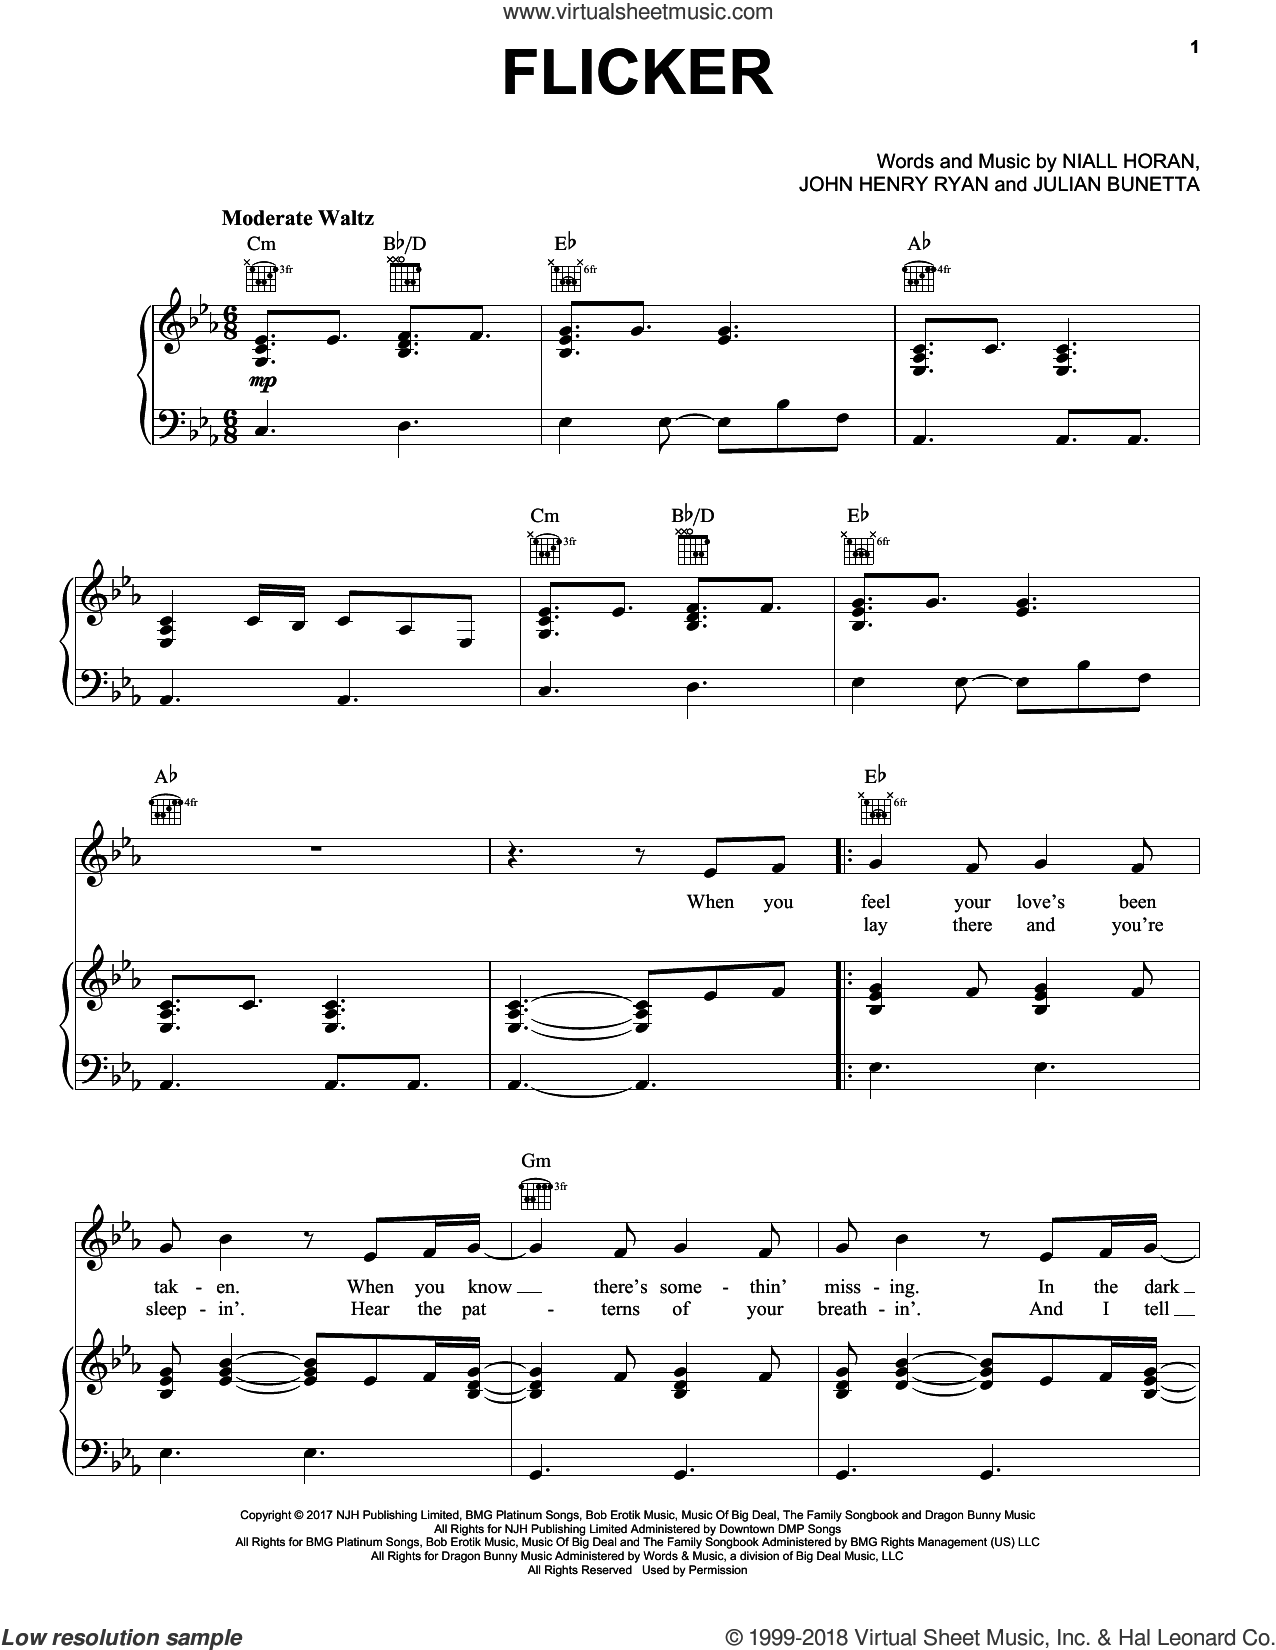 Flicker sheet music for voice, piano or guitar by Niall Horan, John Henry Ryan and Julian Bunetta, intermediate skill level